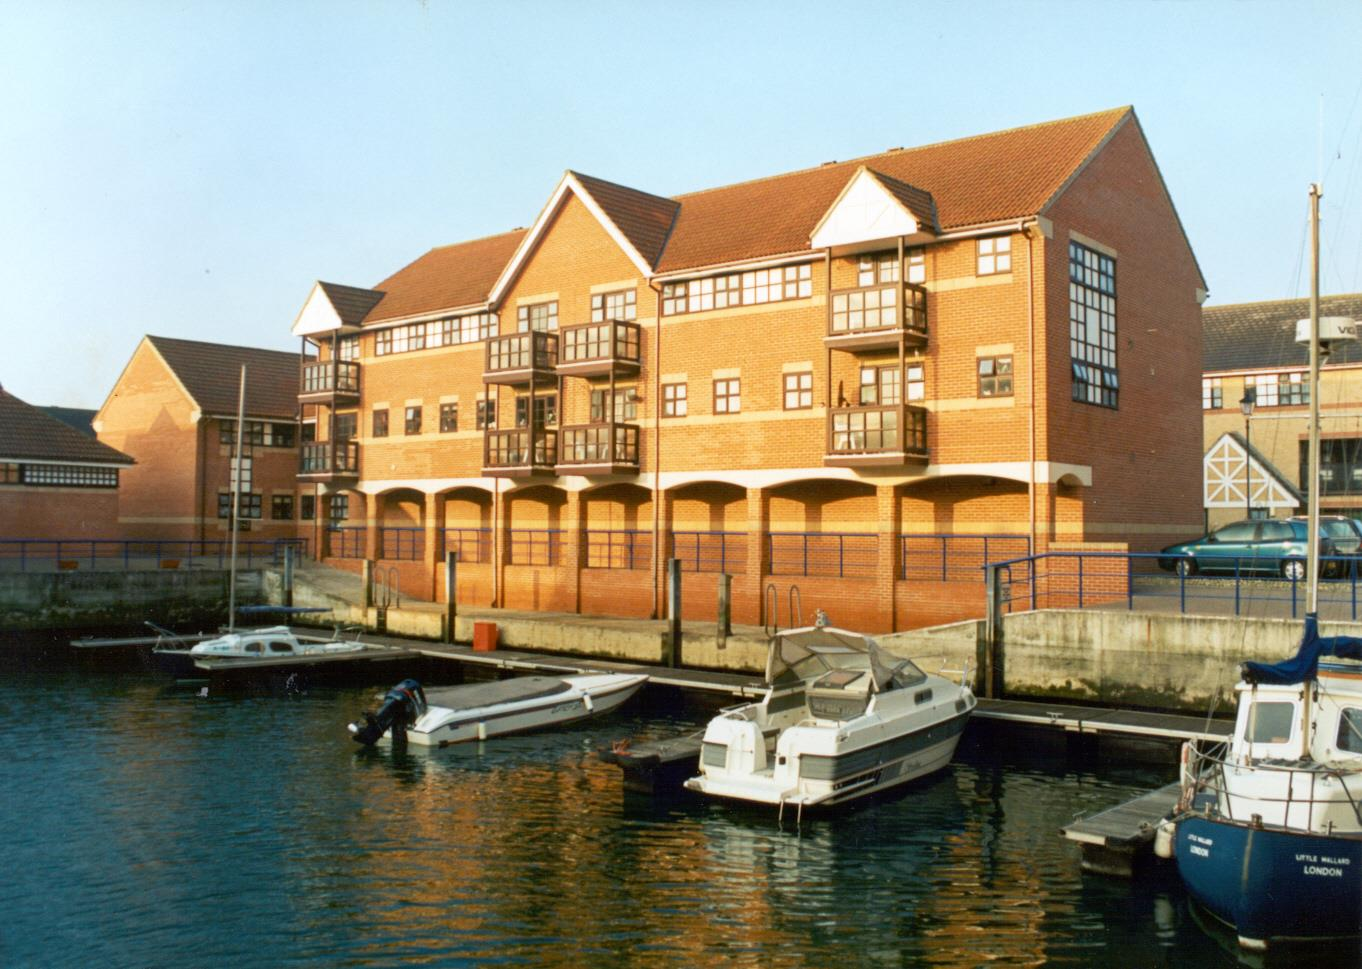 2 Bedrooms Flat for sale in The Quay, Emerald quay, Harbour way, Shoreham by sea